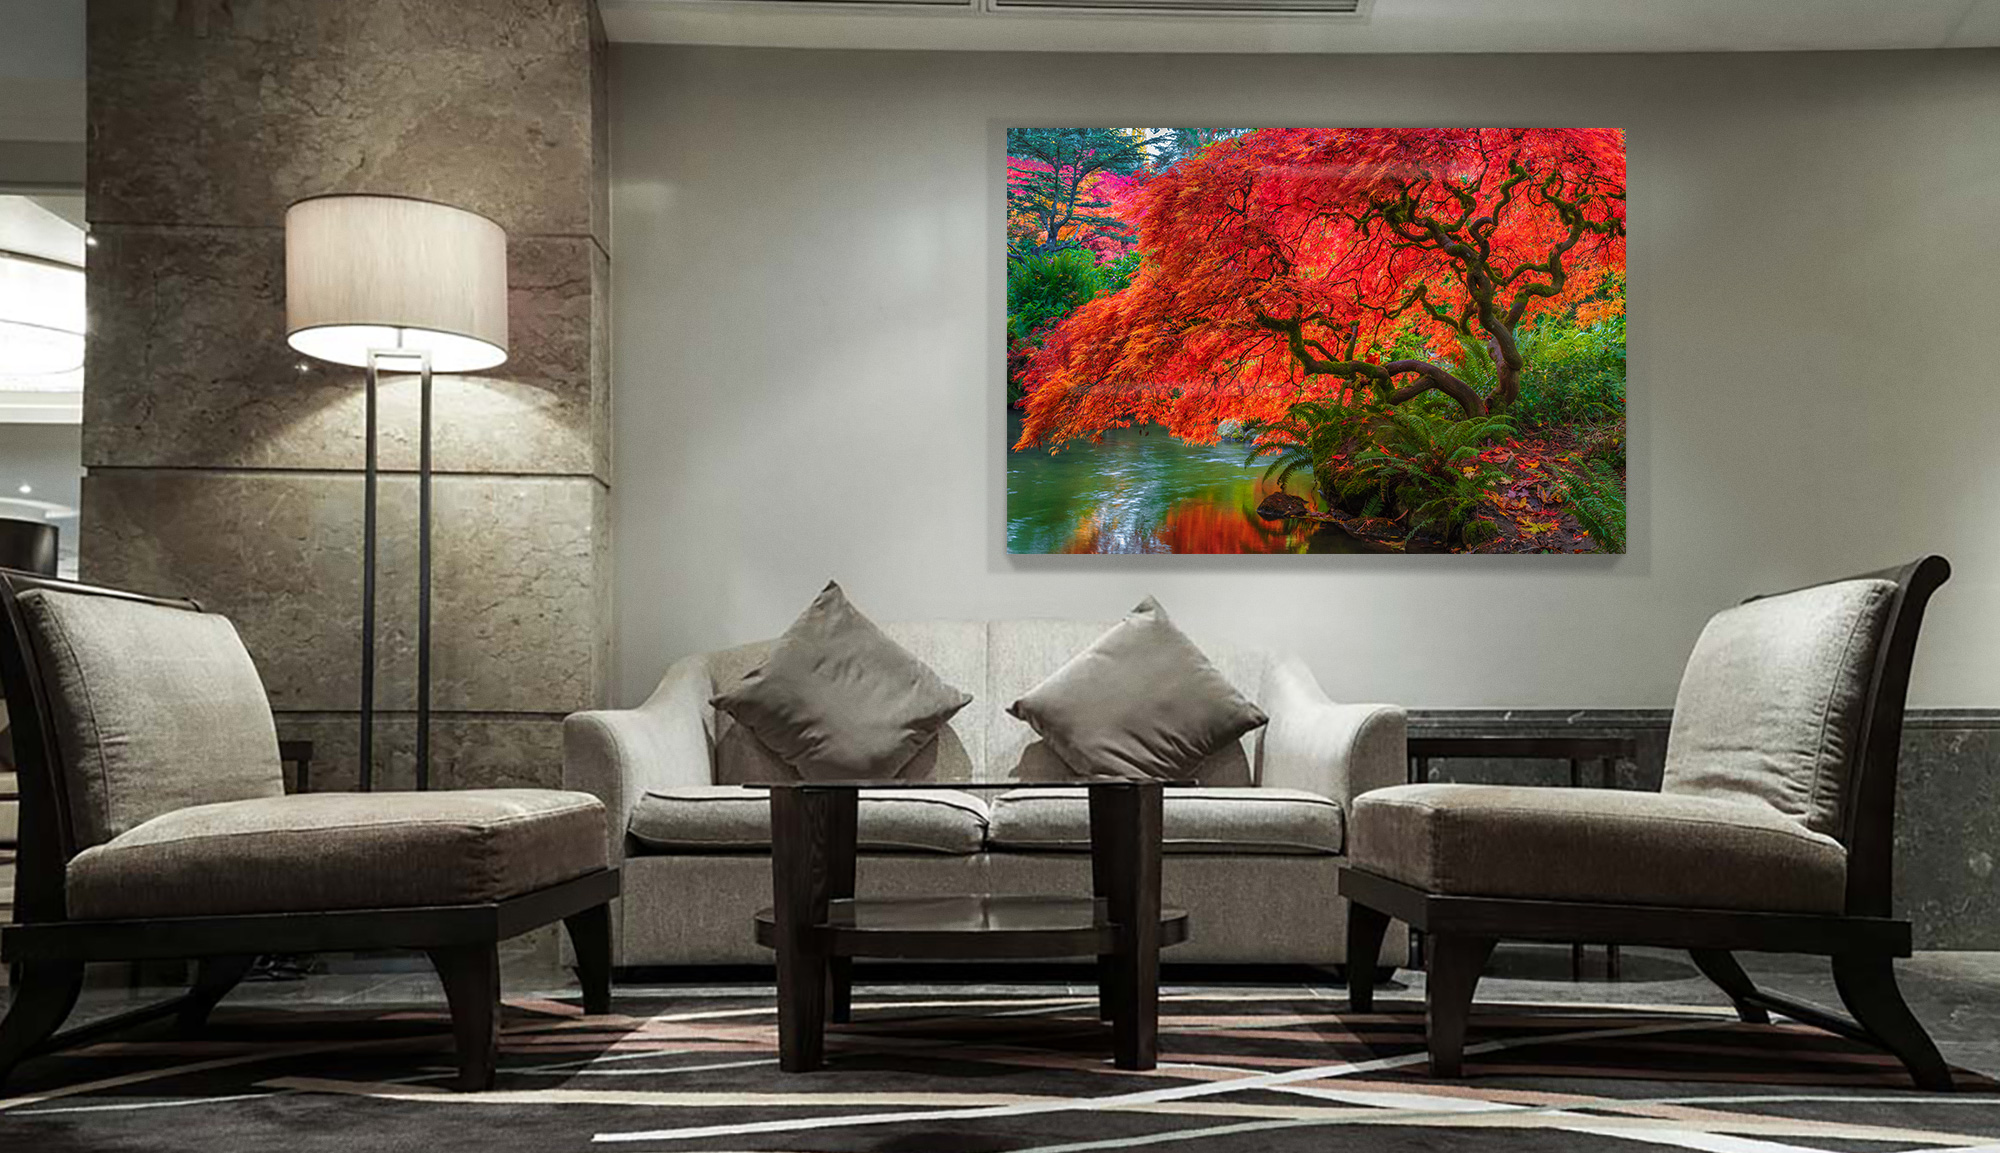 Tree Of Fire in a lobby space